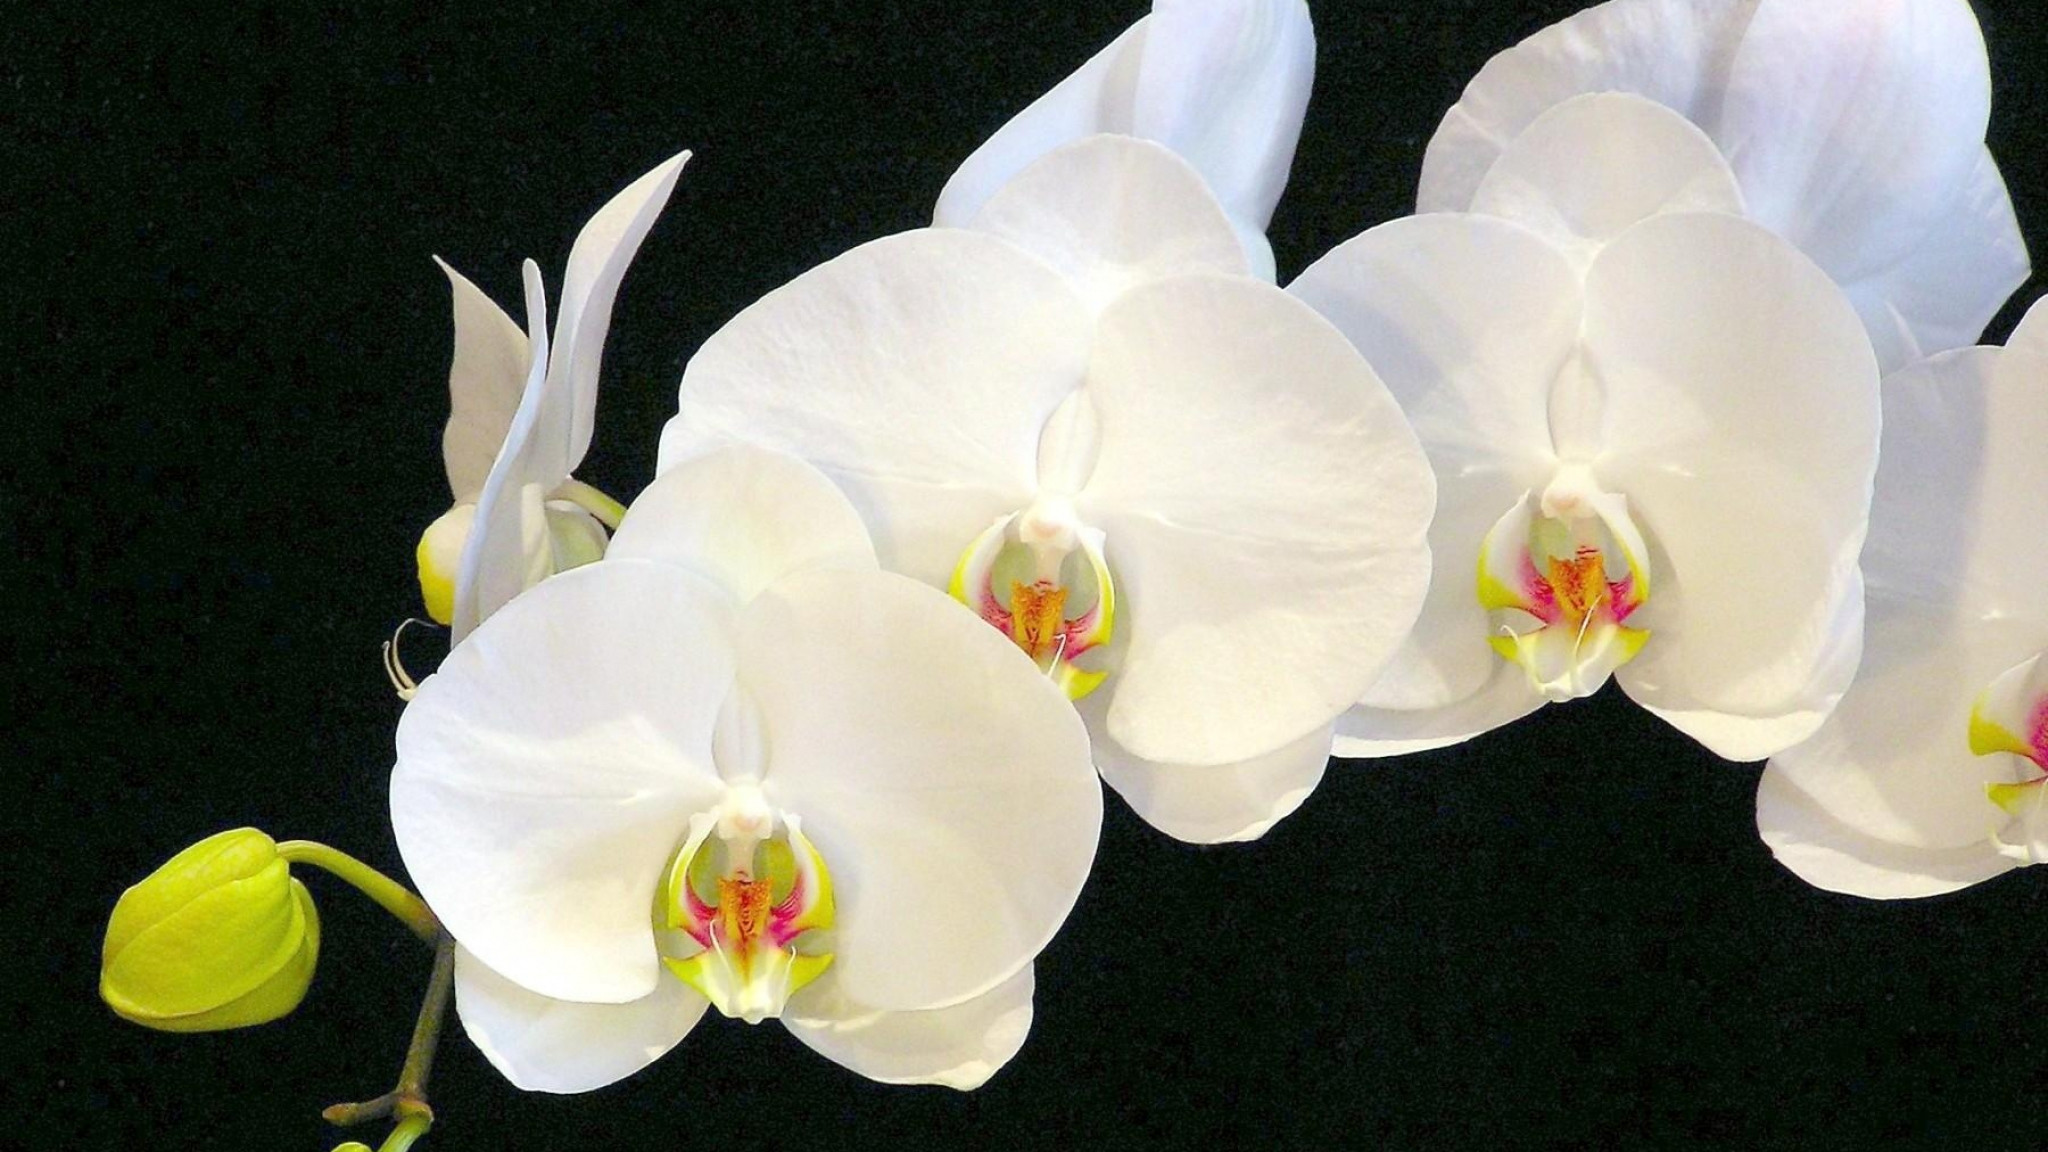 White orchid wallpaper 60 images - White orchid flowers desktop wallpapers ...